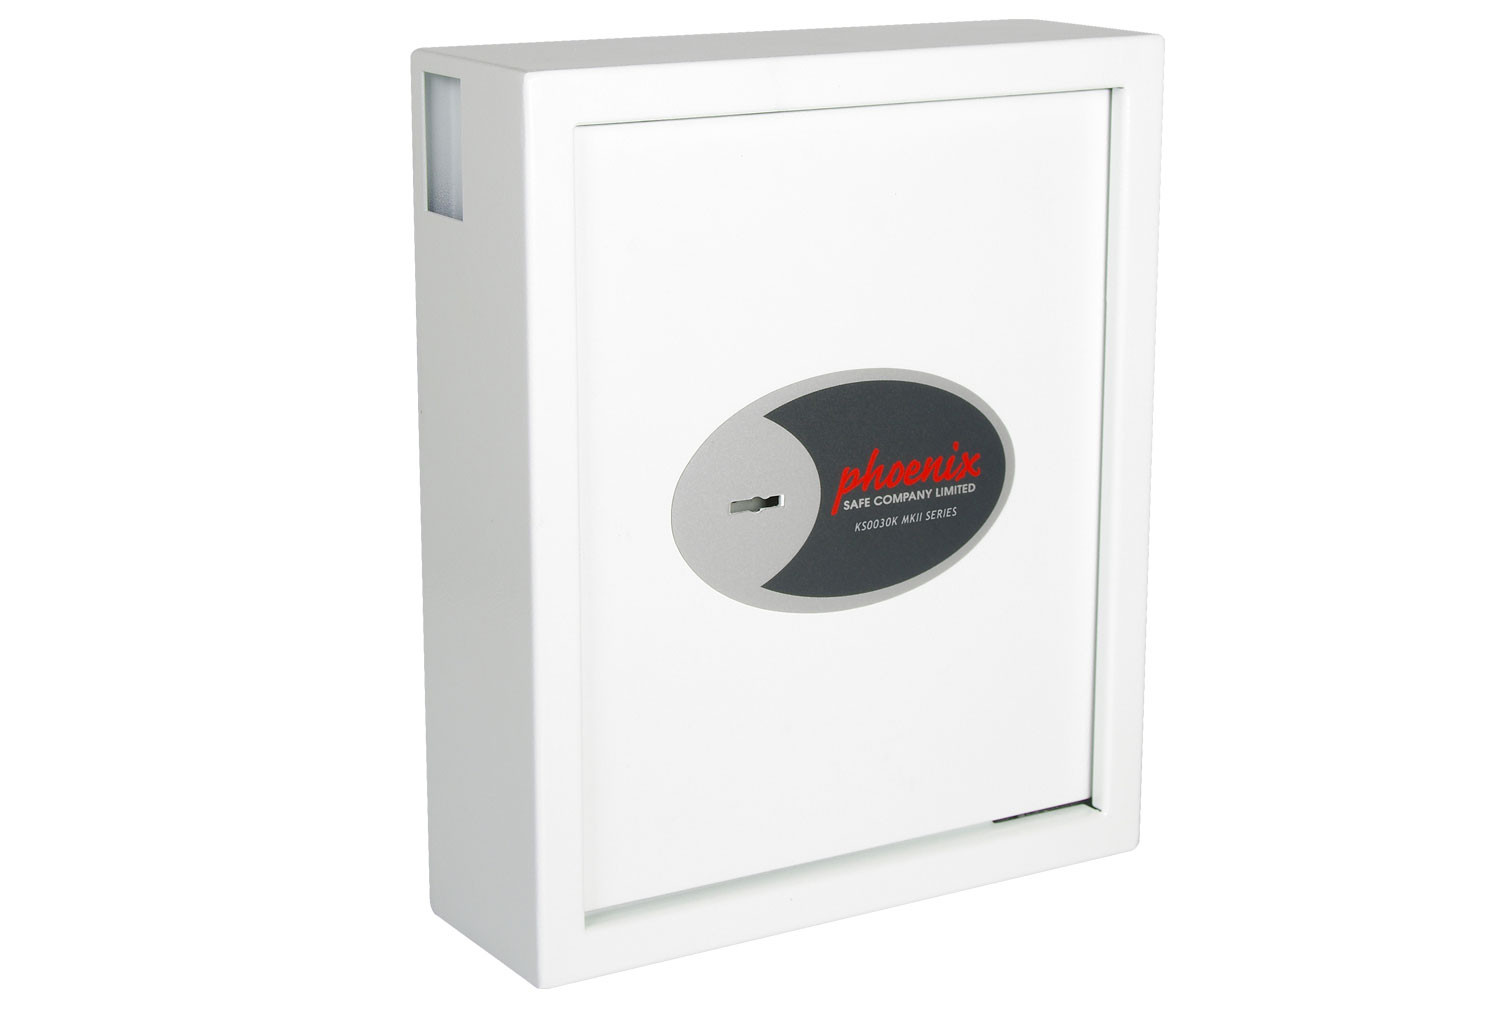 Phoenix key deposit safe KS0032K with key lock